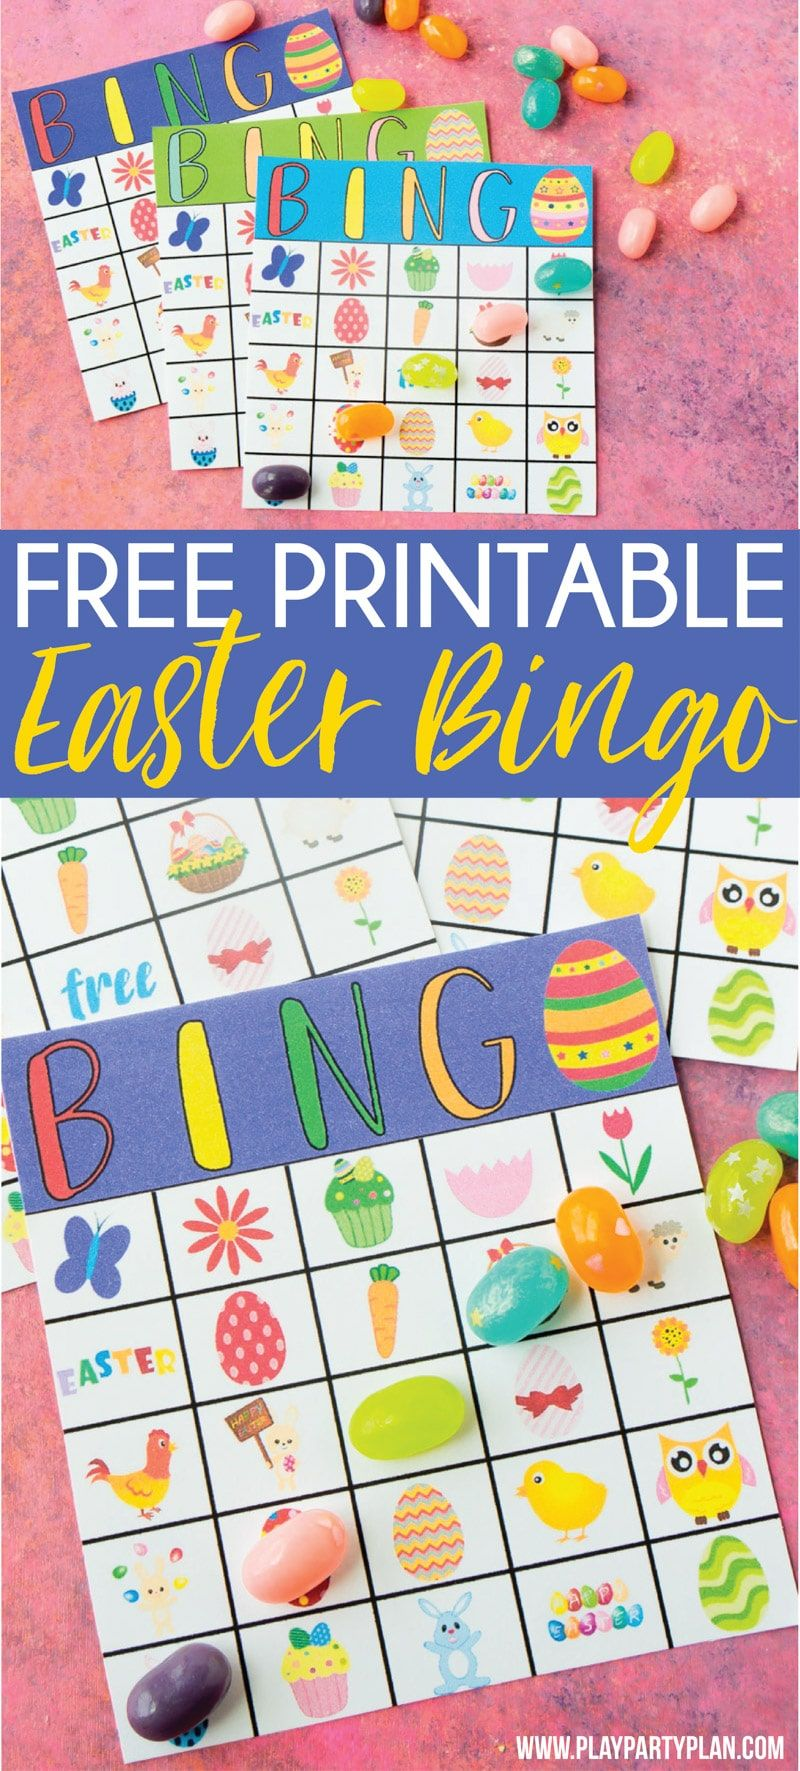 Free Printable Easter Bingo Cards Easter party games